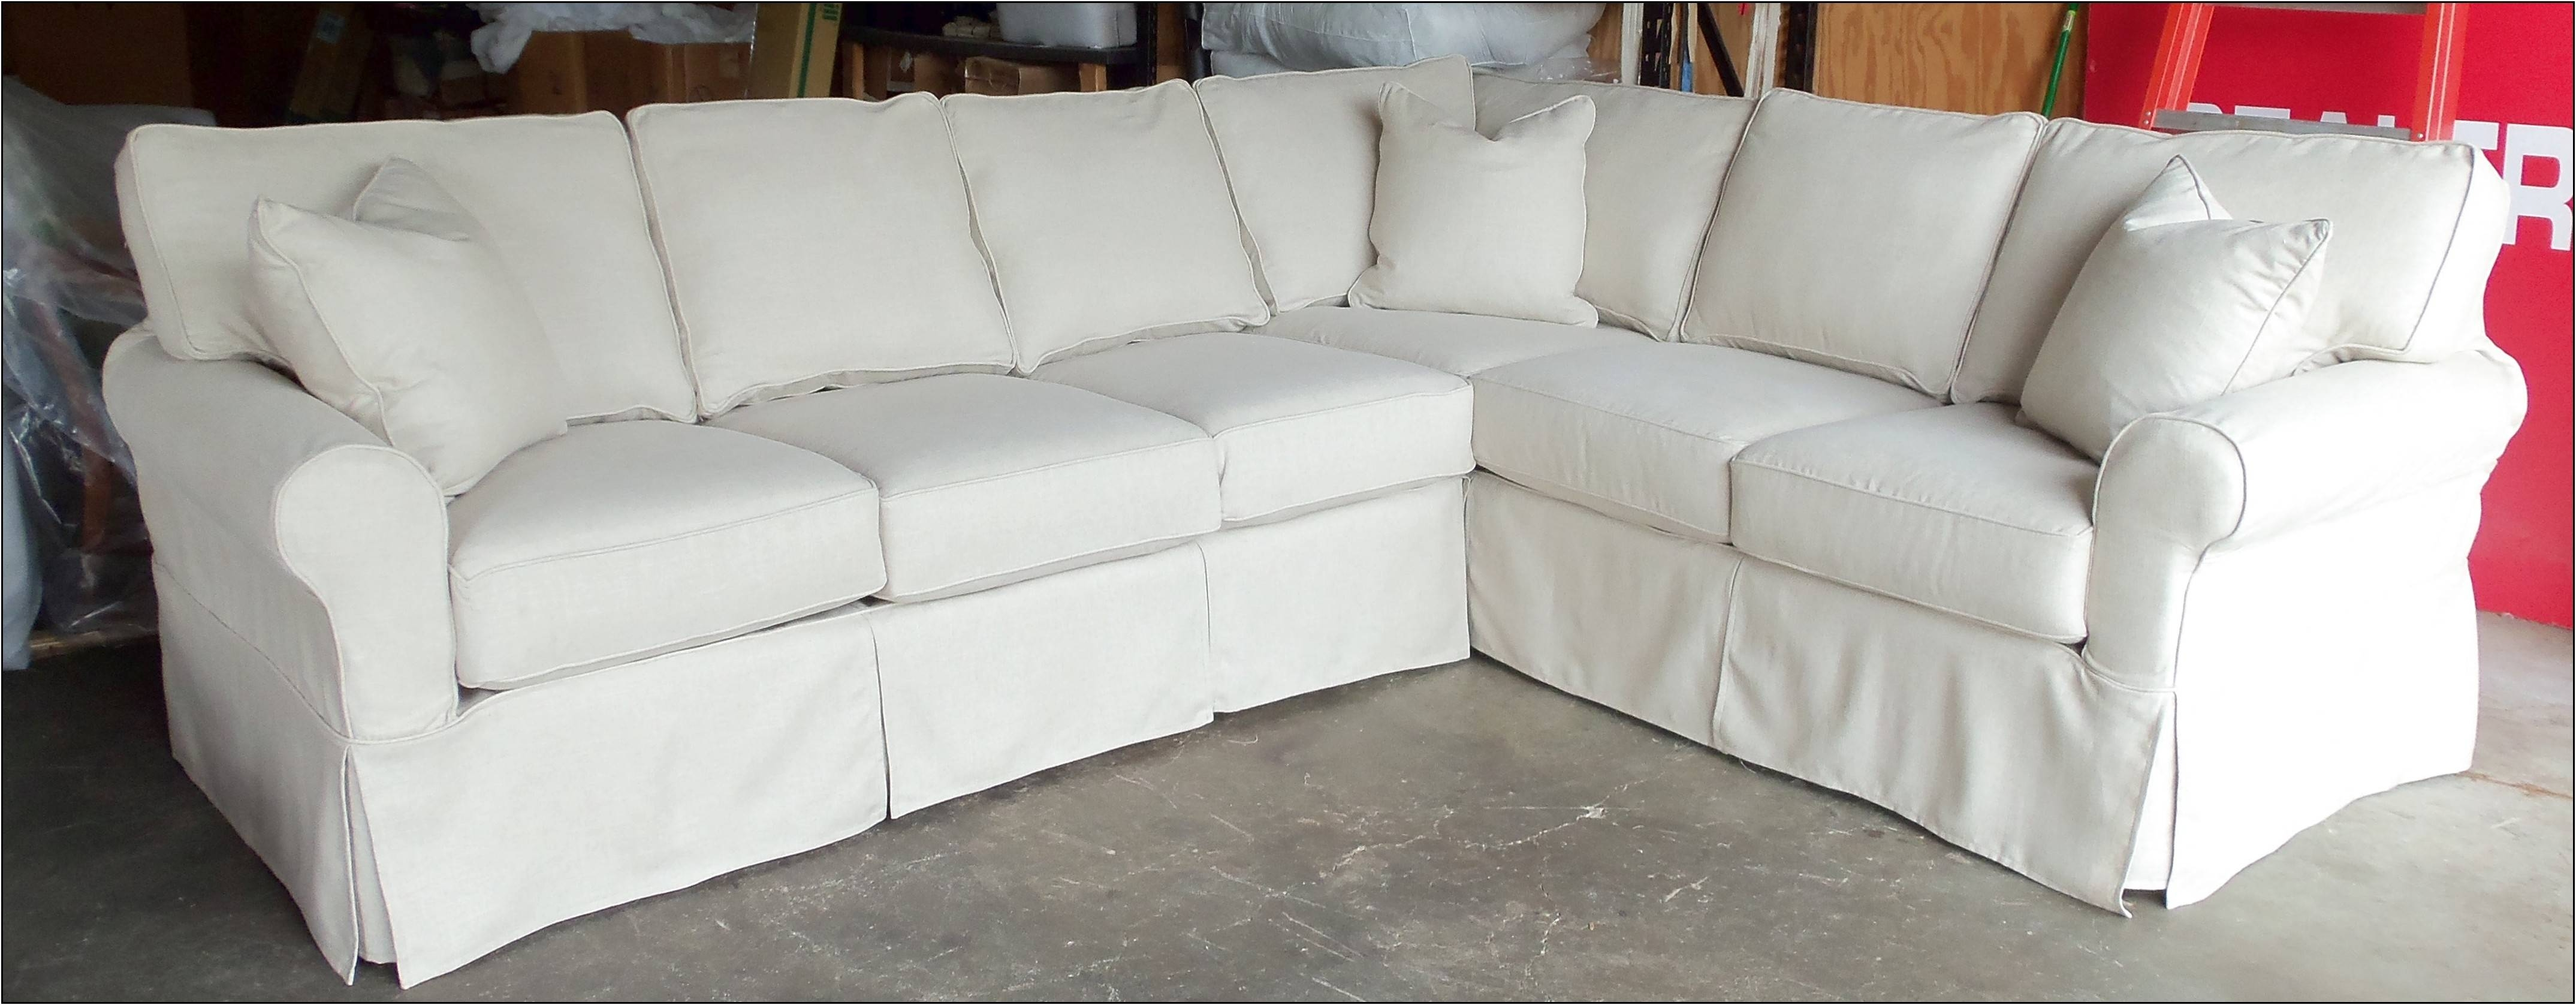 Custom Slipcovers For Sectional Sofas | Sofas Decoration pertaining to Contemporary Sofa Slipcovers (Image 8 of 30)